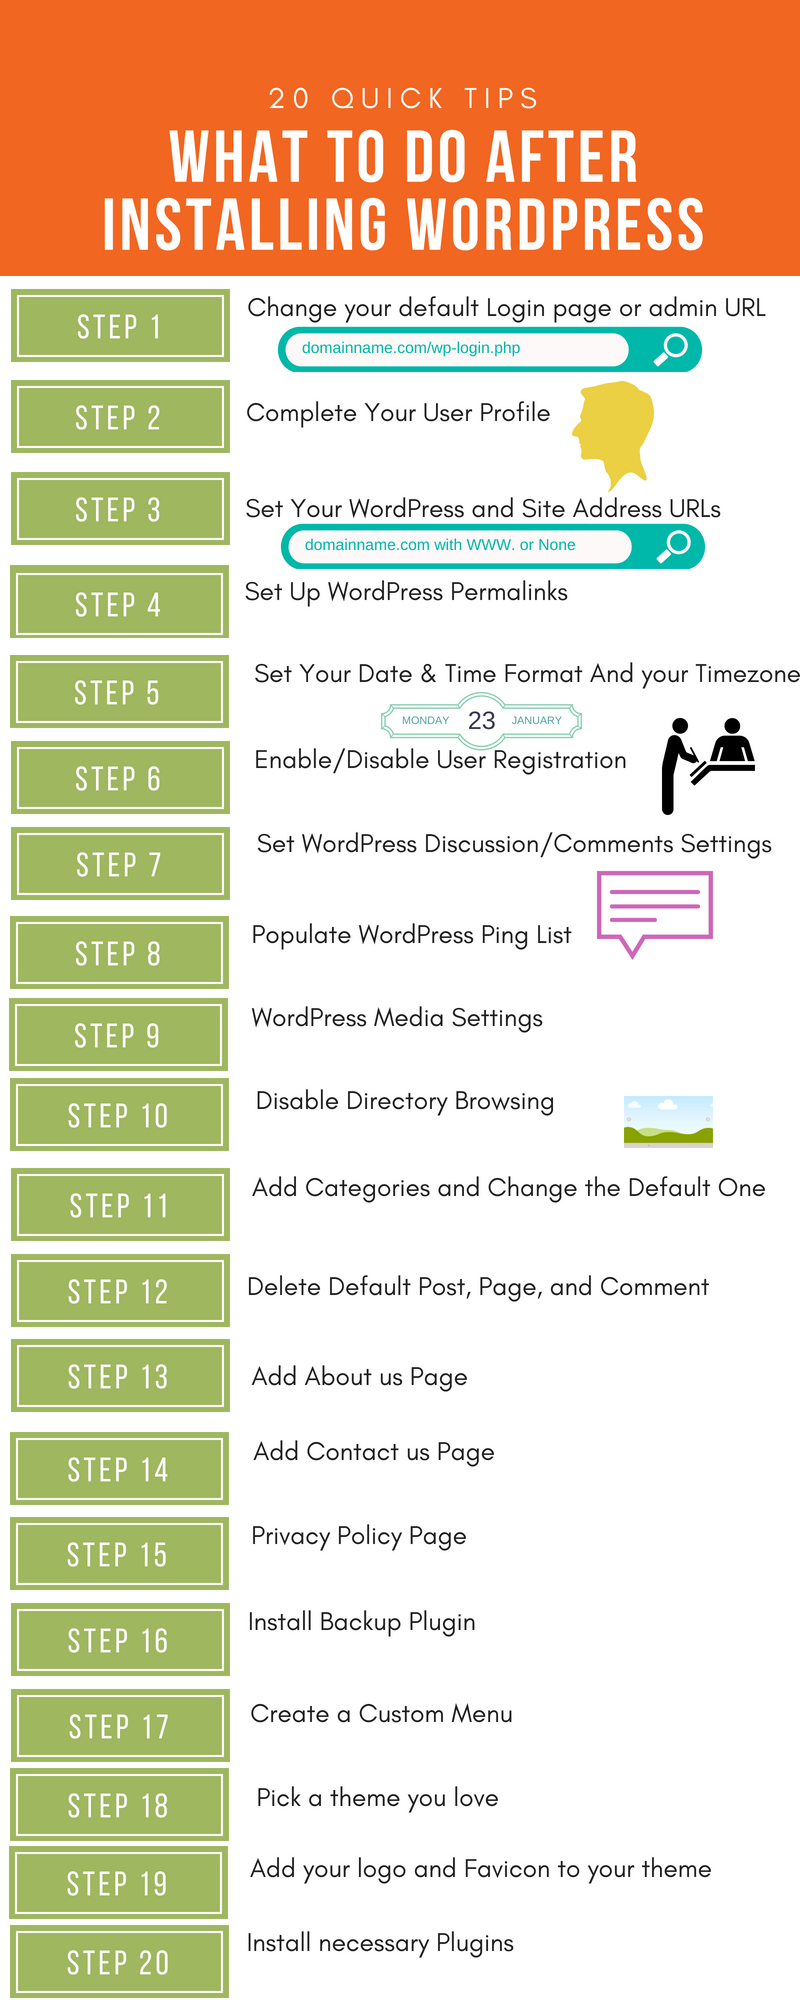 20 Quick Tips What To Do After Installing WordPress Infographic